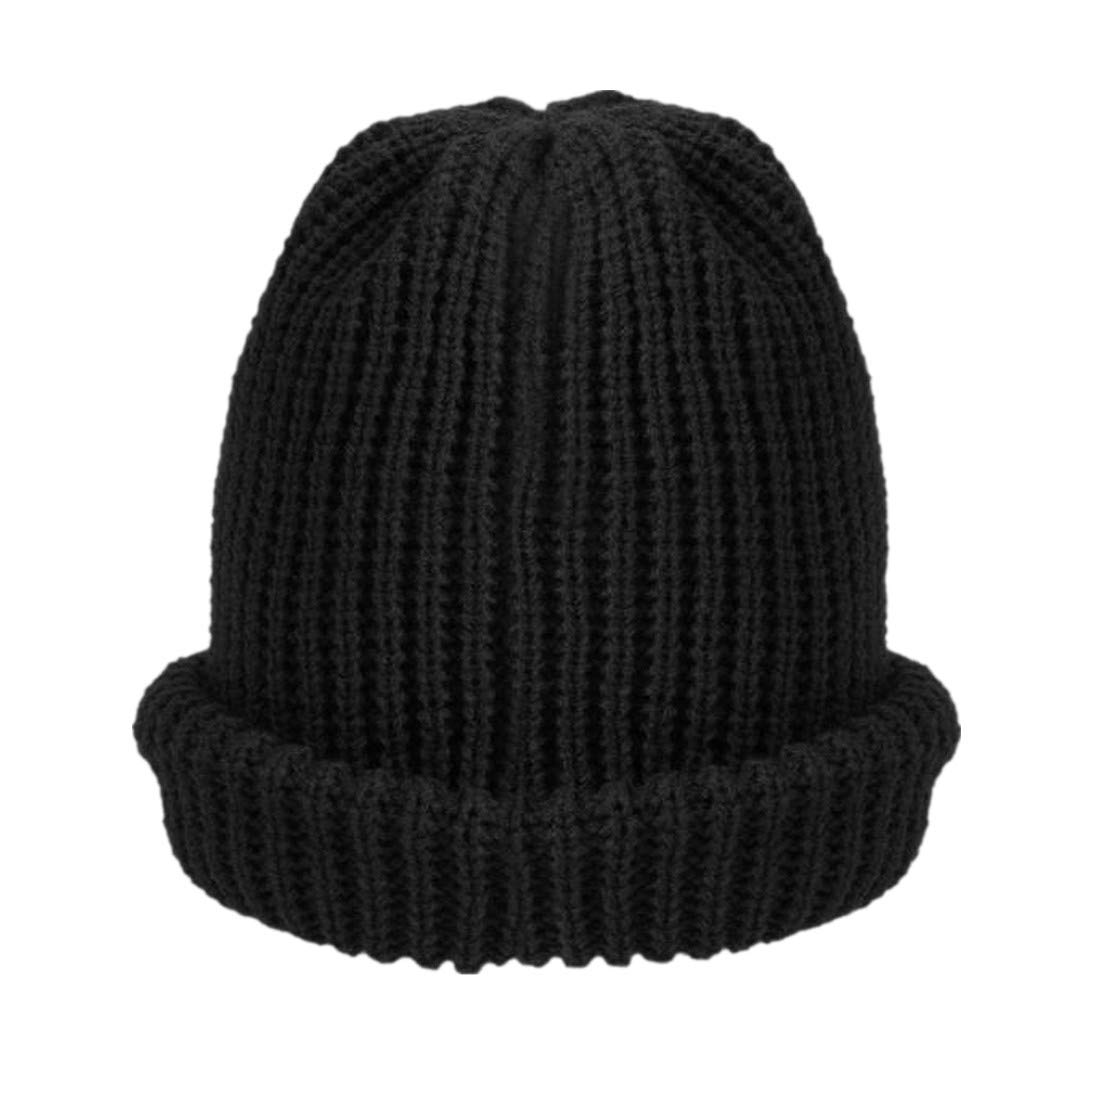 Unisex Knitted Winter Hats for Autumn Warm Casual Beanie Baggy Slouchy Elastic Hat